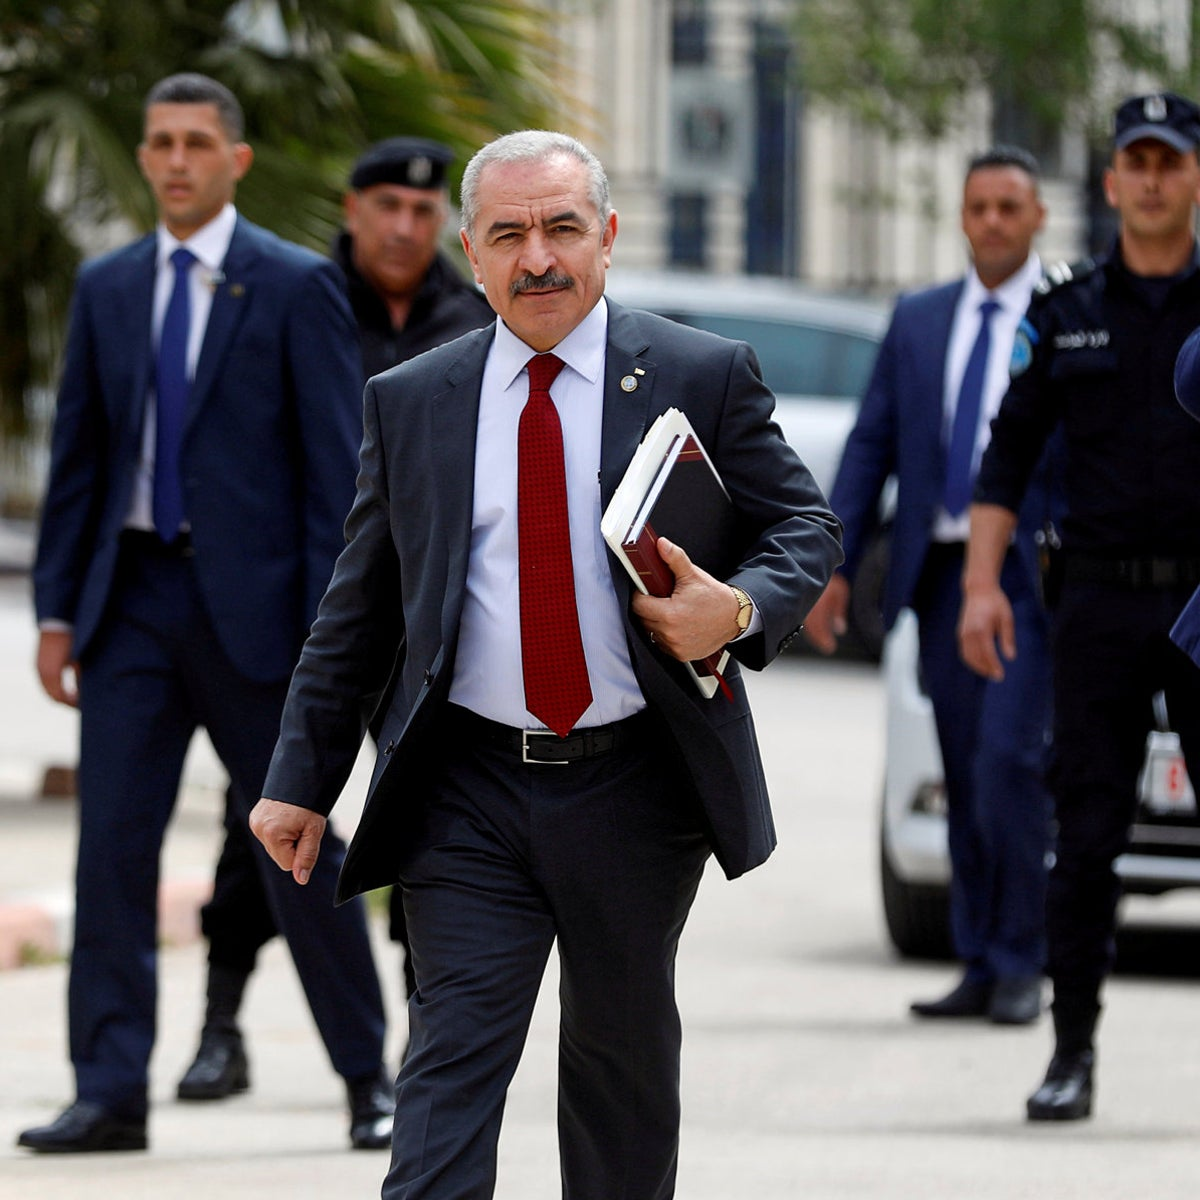 Palestinian Prime Minister Mohammad Shtayyeh arrives for a cabinet meeting in Ramallah, April 15, 2019.